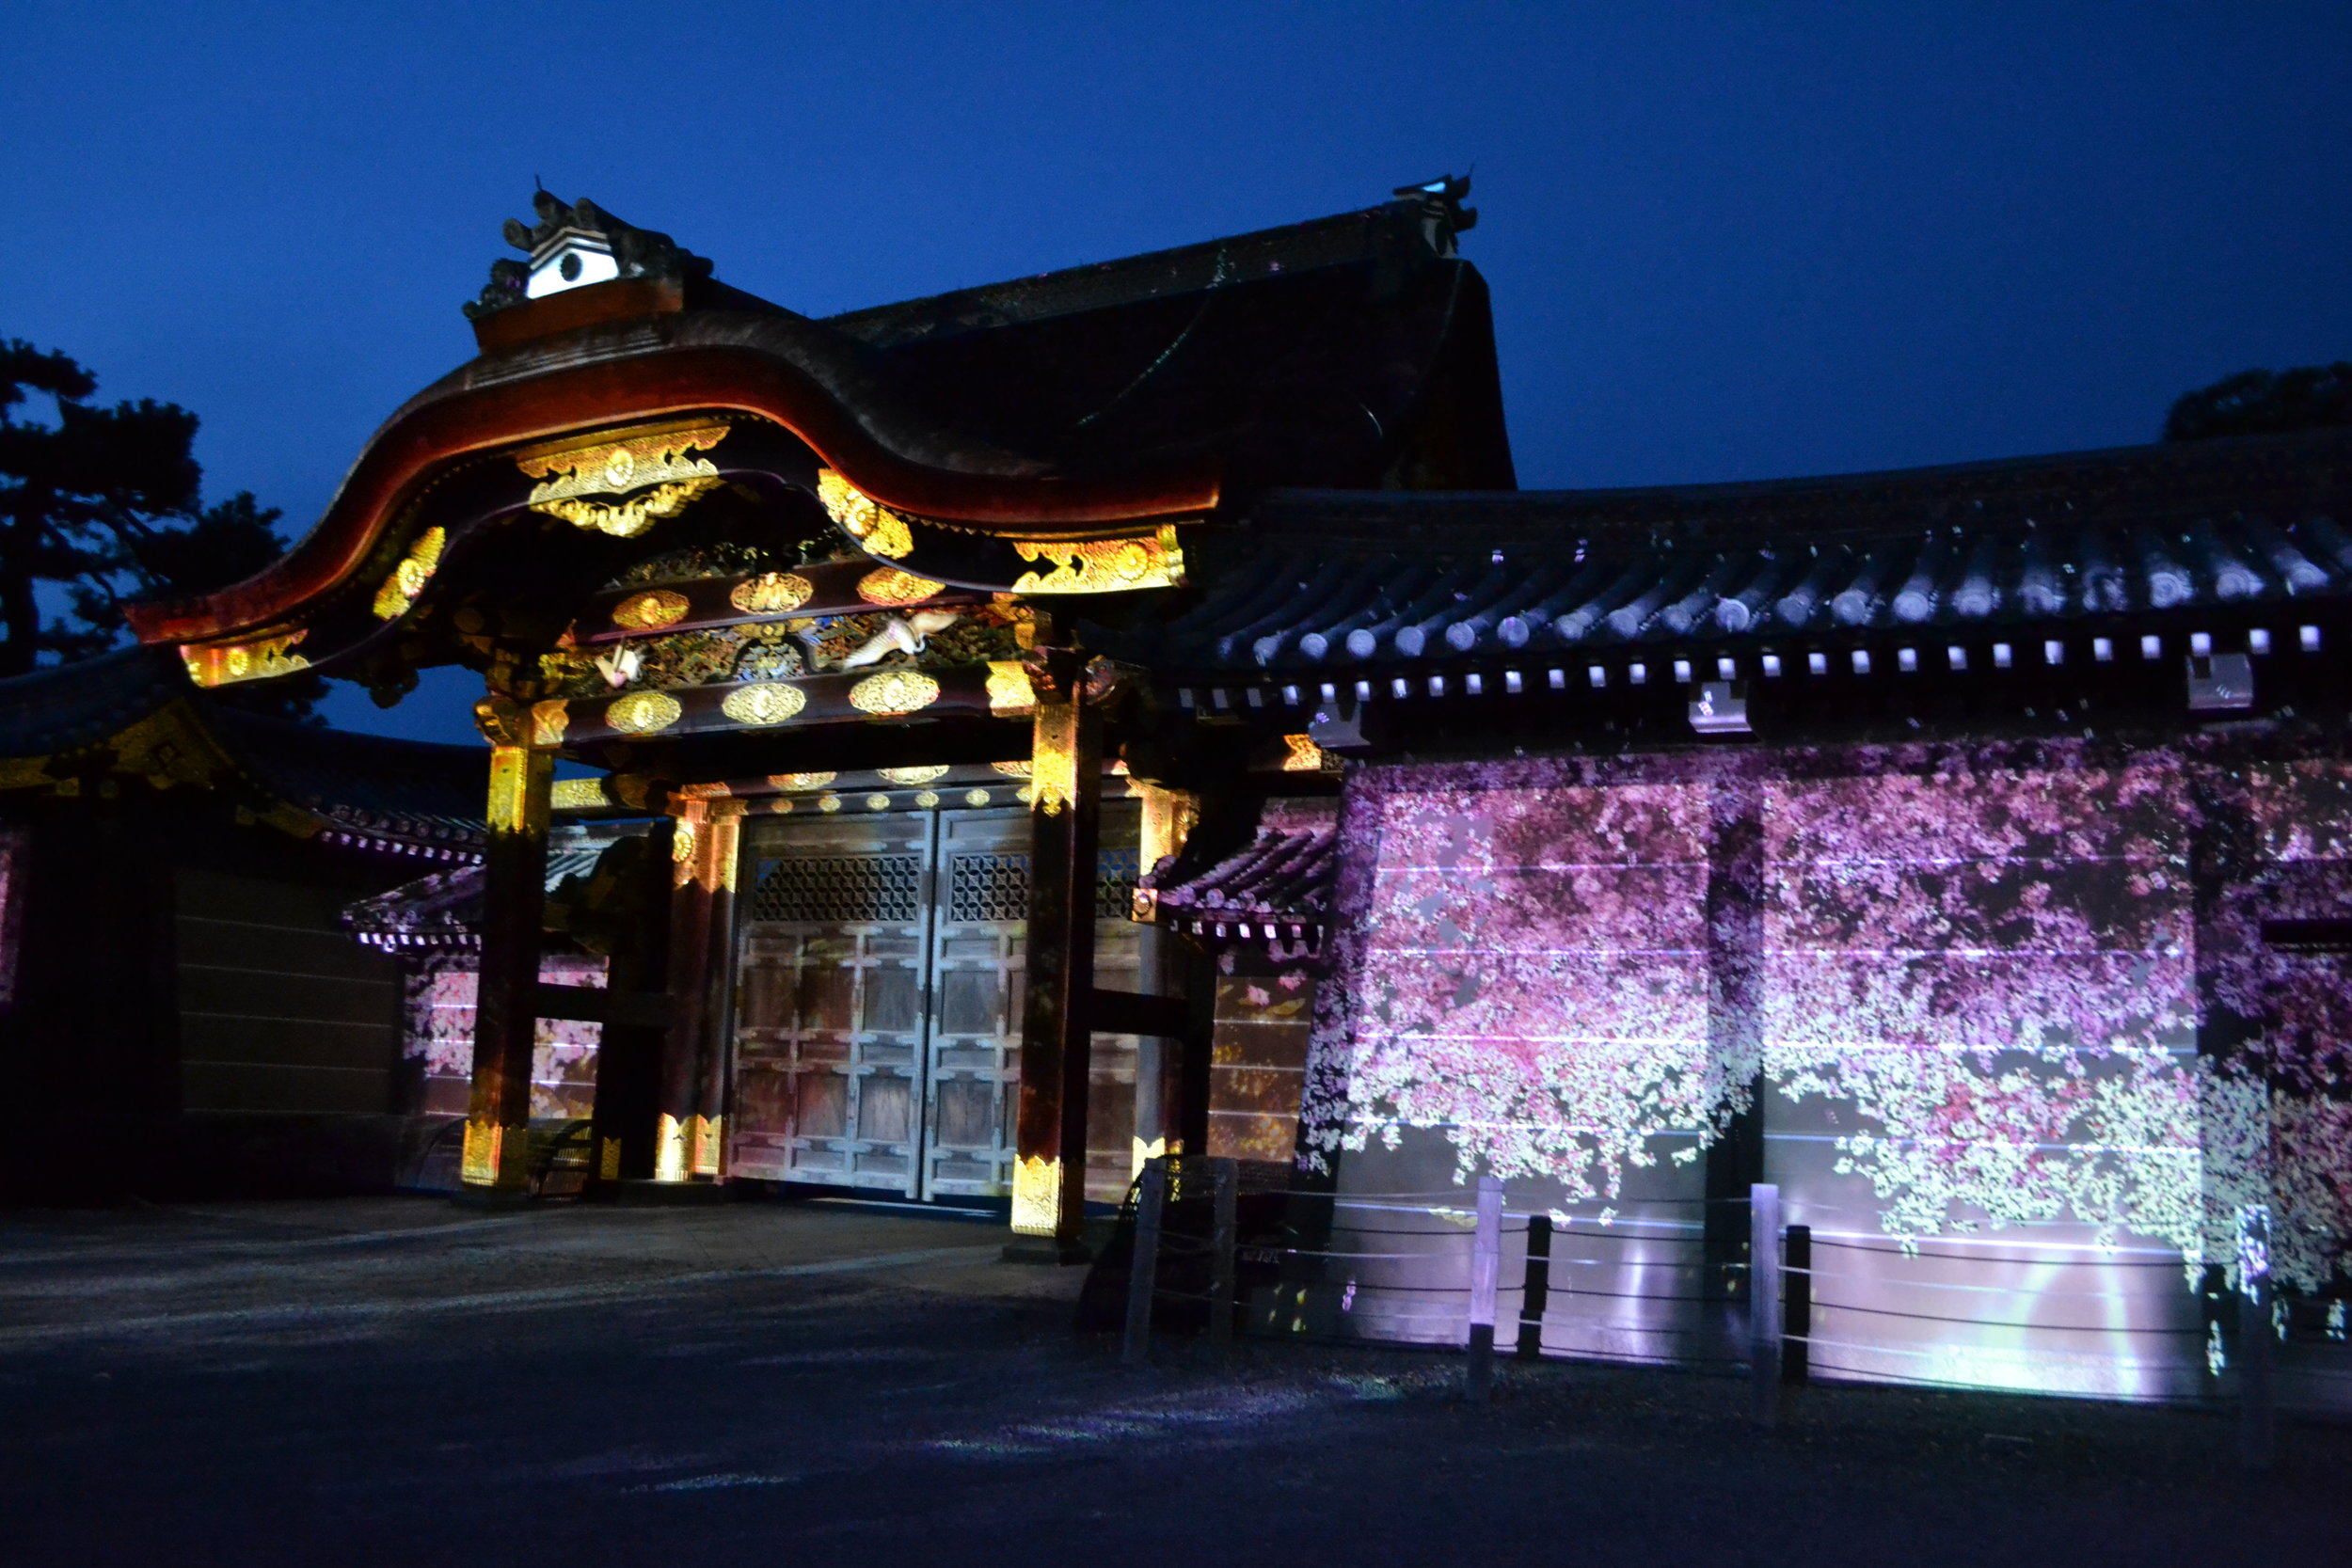 One of the main gates had this illumination of cherry blossoms that were a nice introduction to the rest of the real cherry blossom gardens.